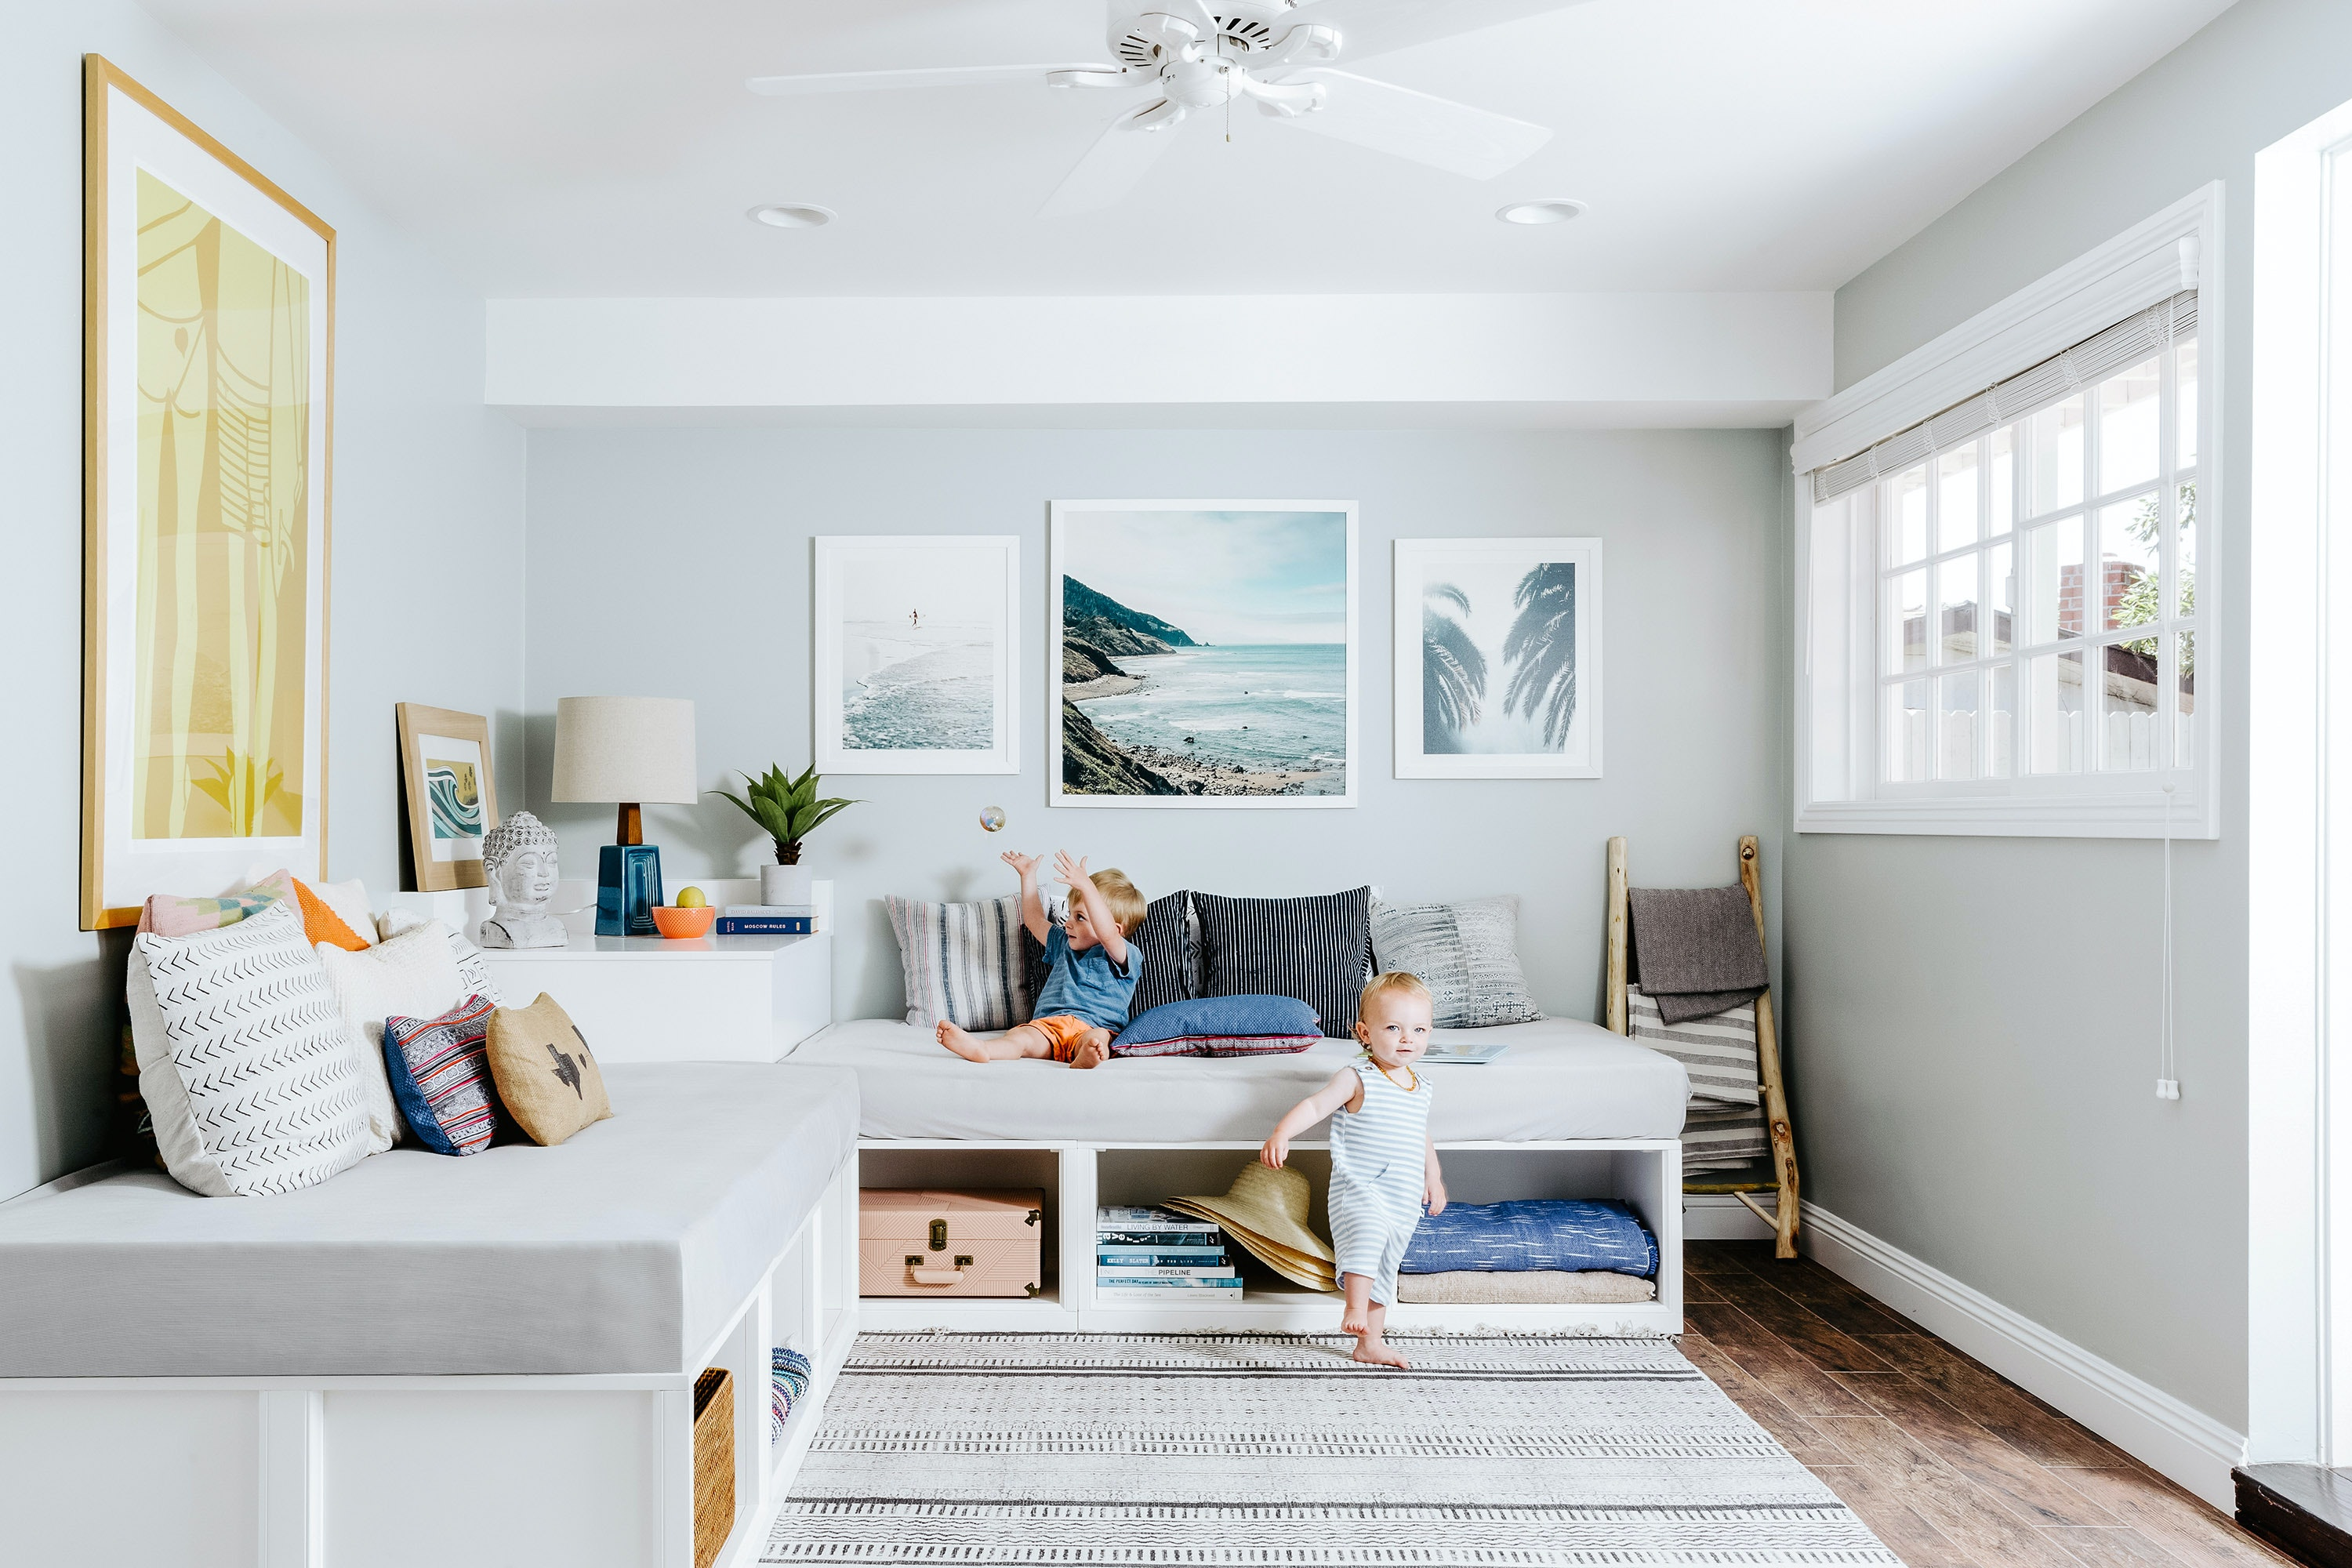 A helpful amenities search on the Kid & Coe website allows guests to sort listings by category of travel (coastal escapes, theme park stays) or special needs (high chair, changing table).